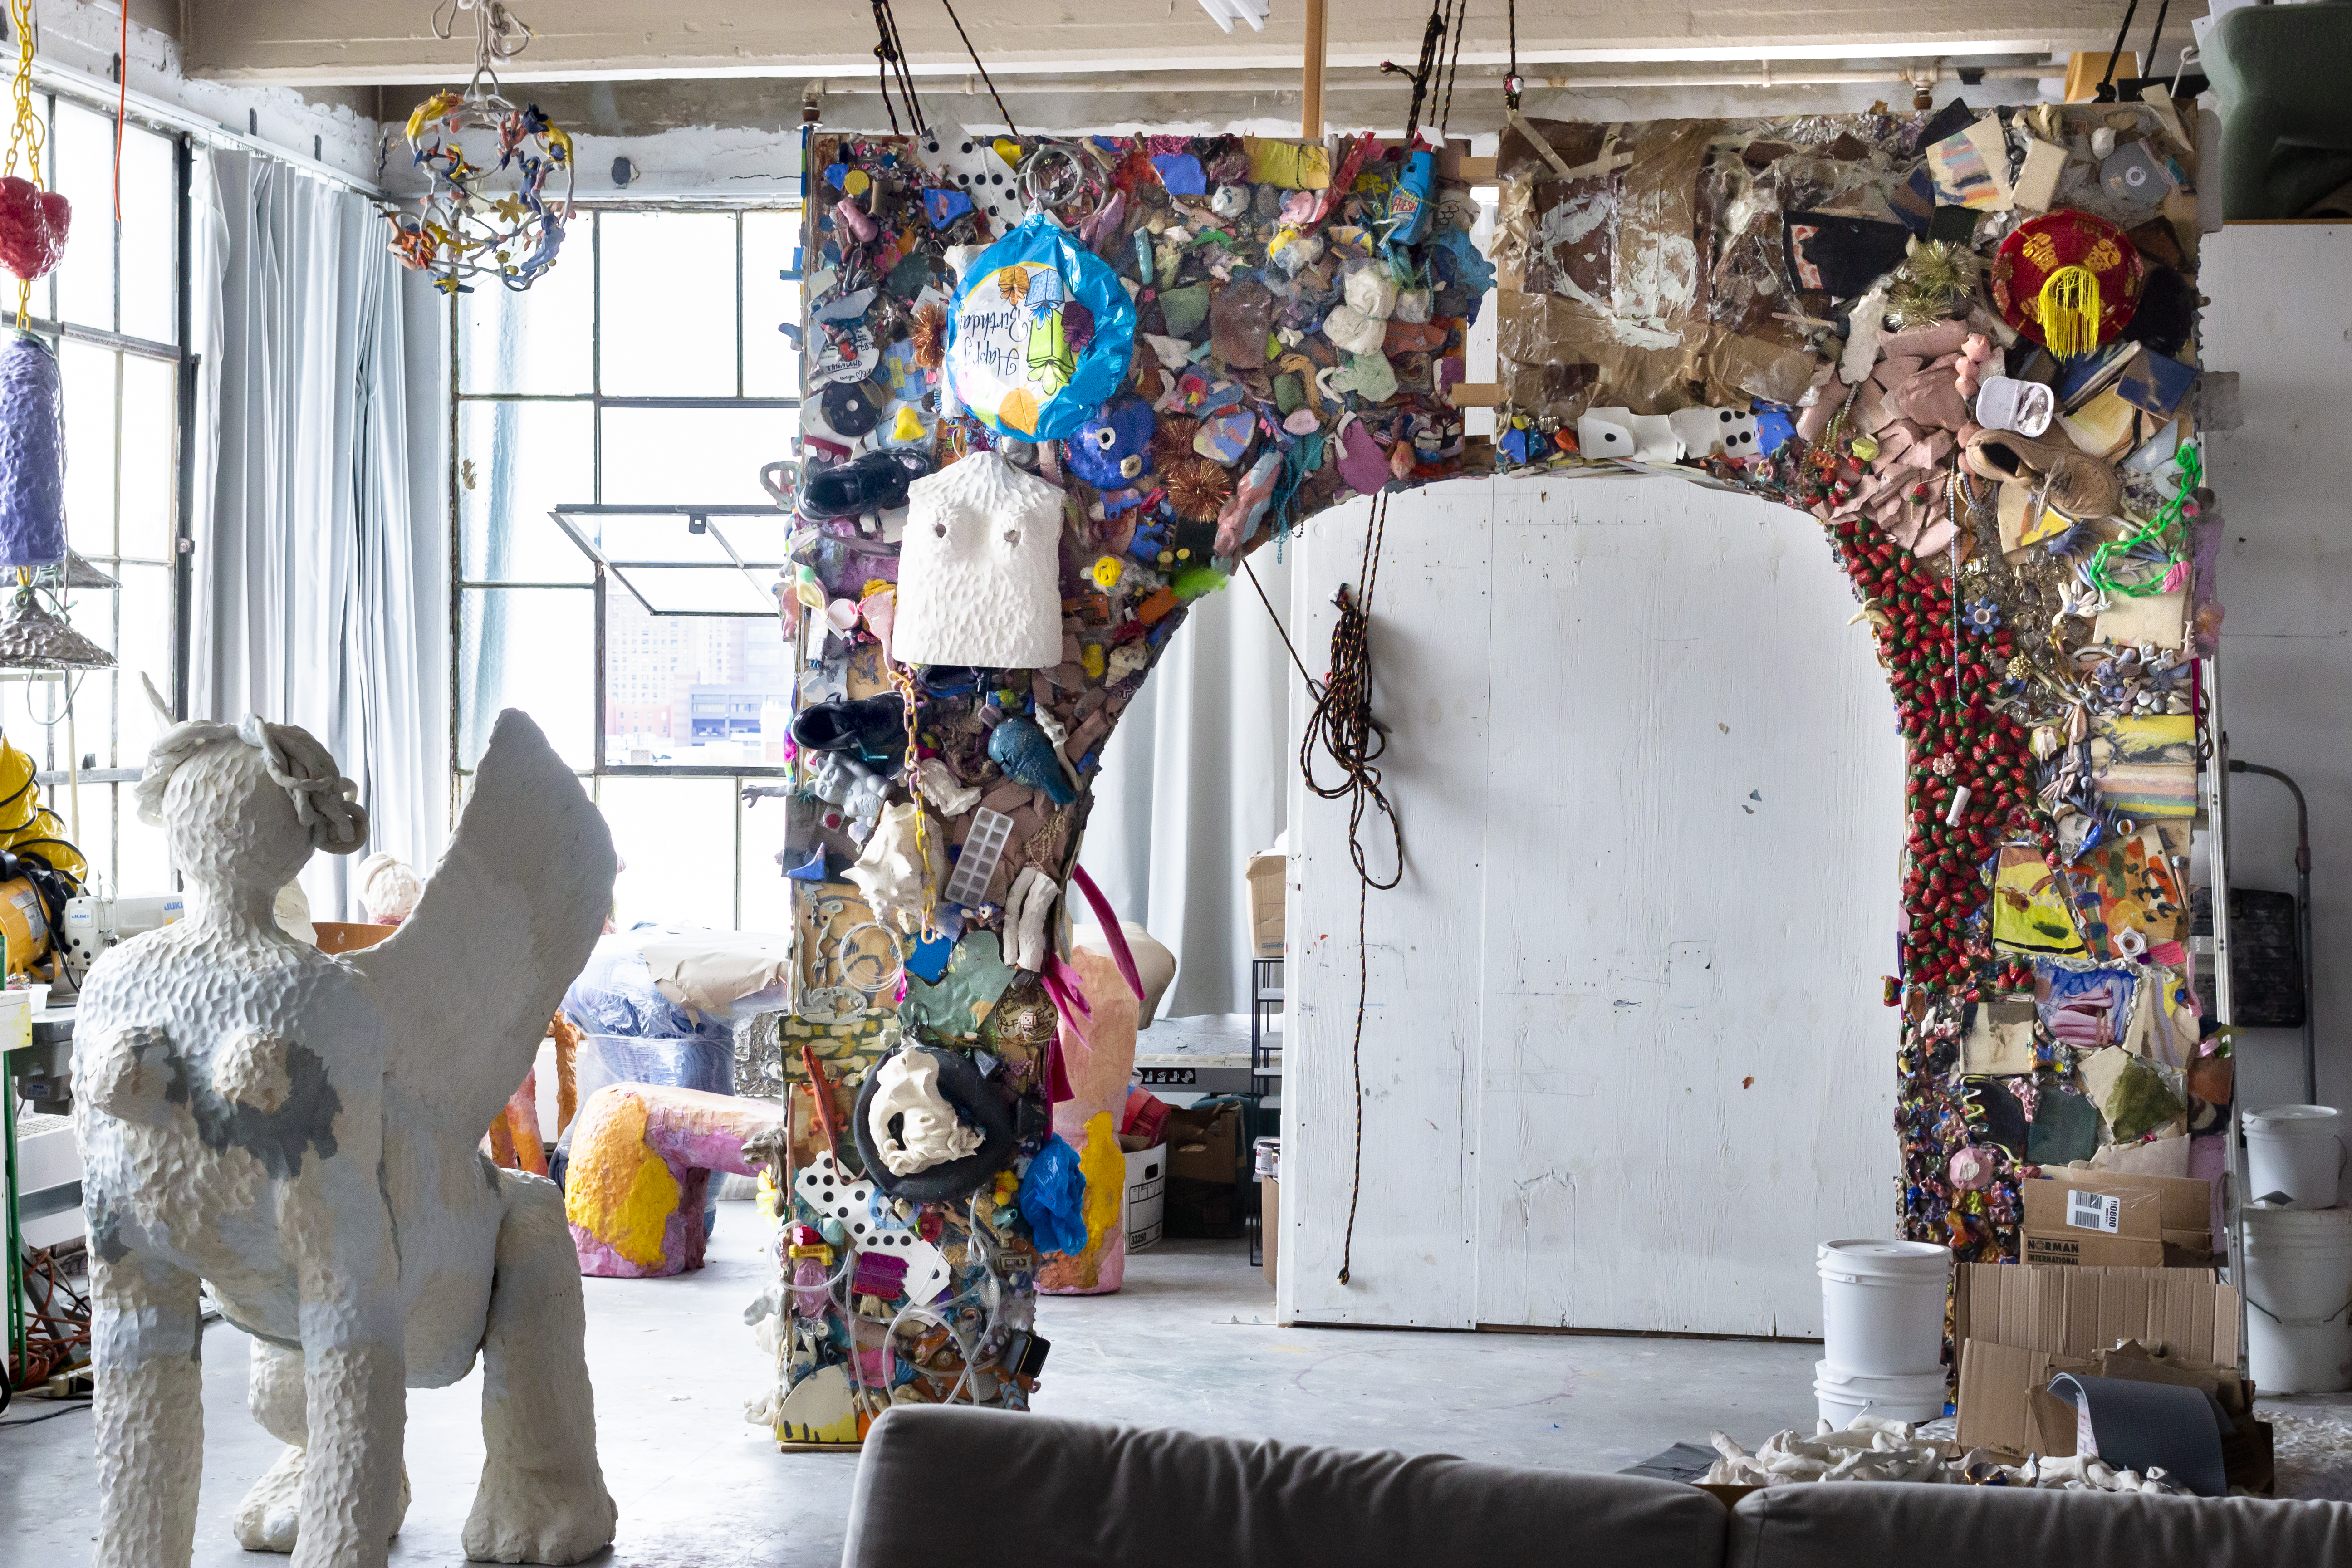 Photo of sculptures made from trash